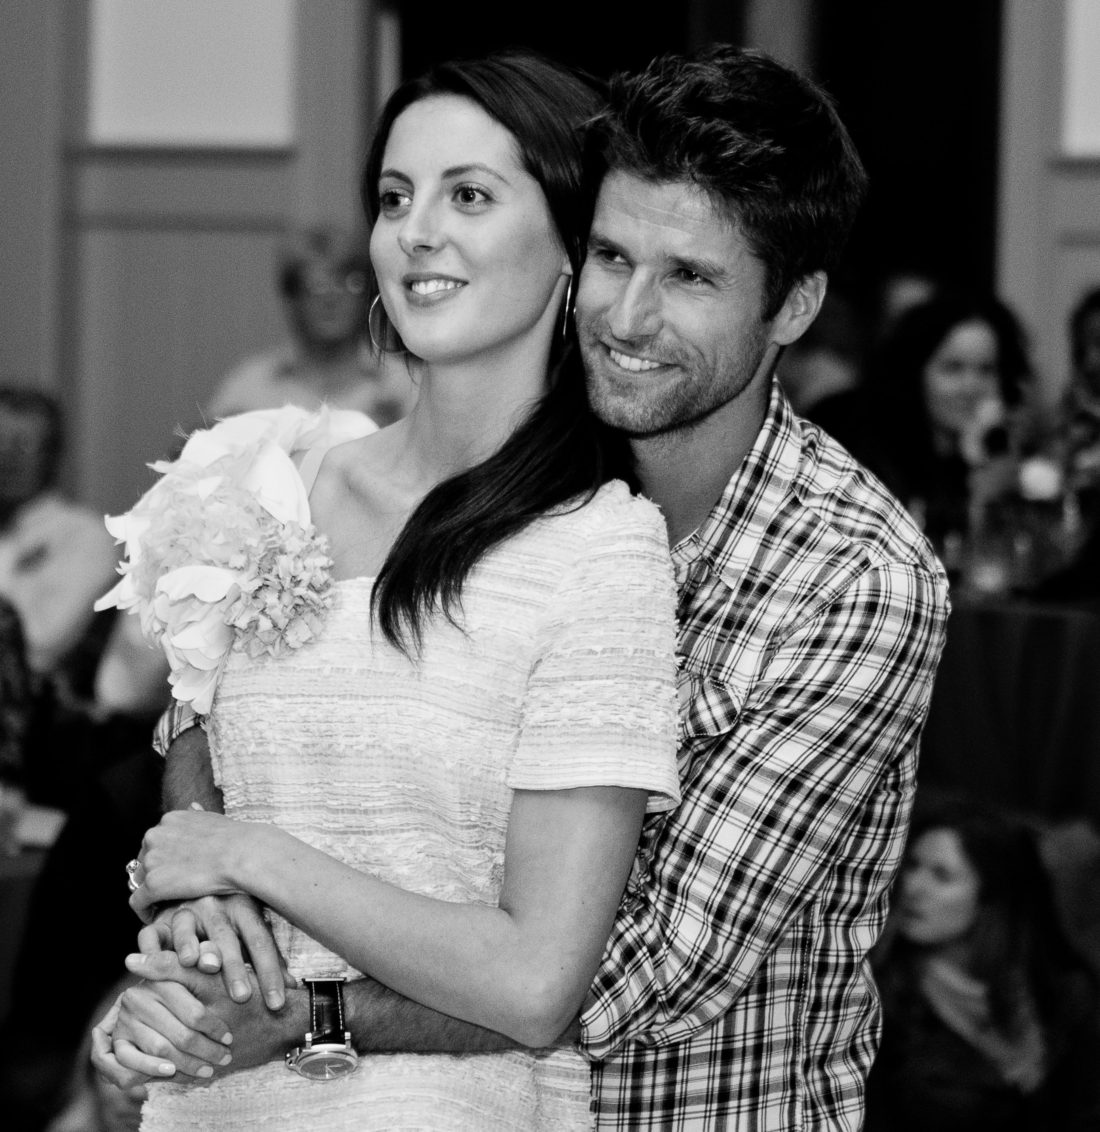 Eva Amurri Martino and husband Kyle Martino pictured embracing in 2011 the night before their wedding in charleston SC